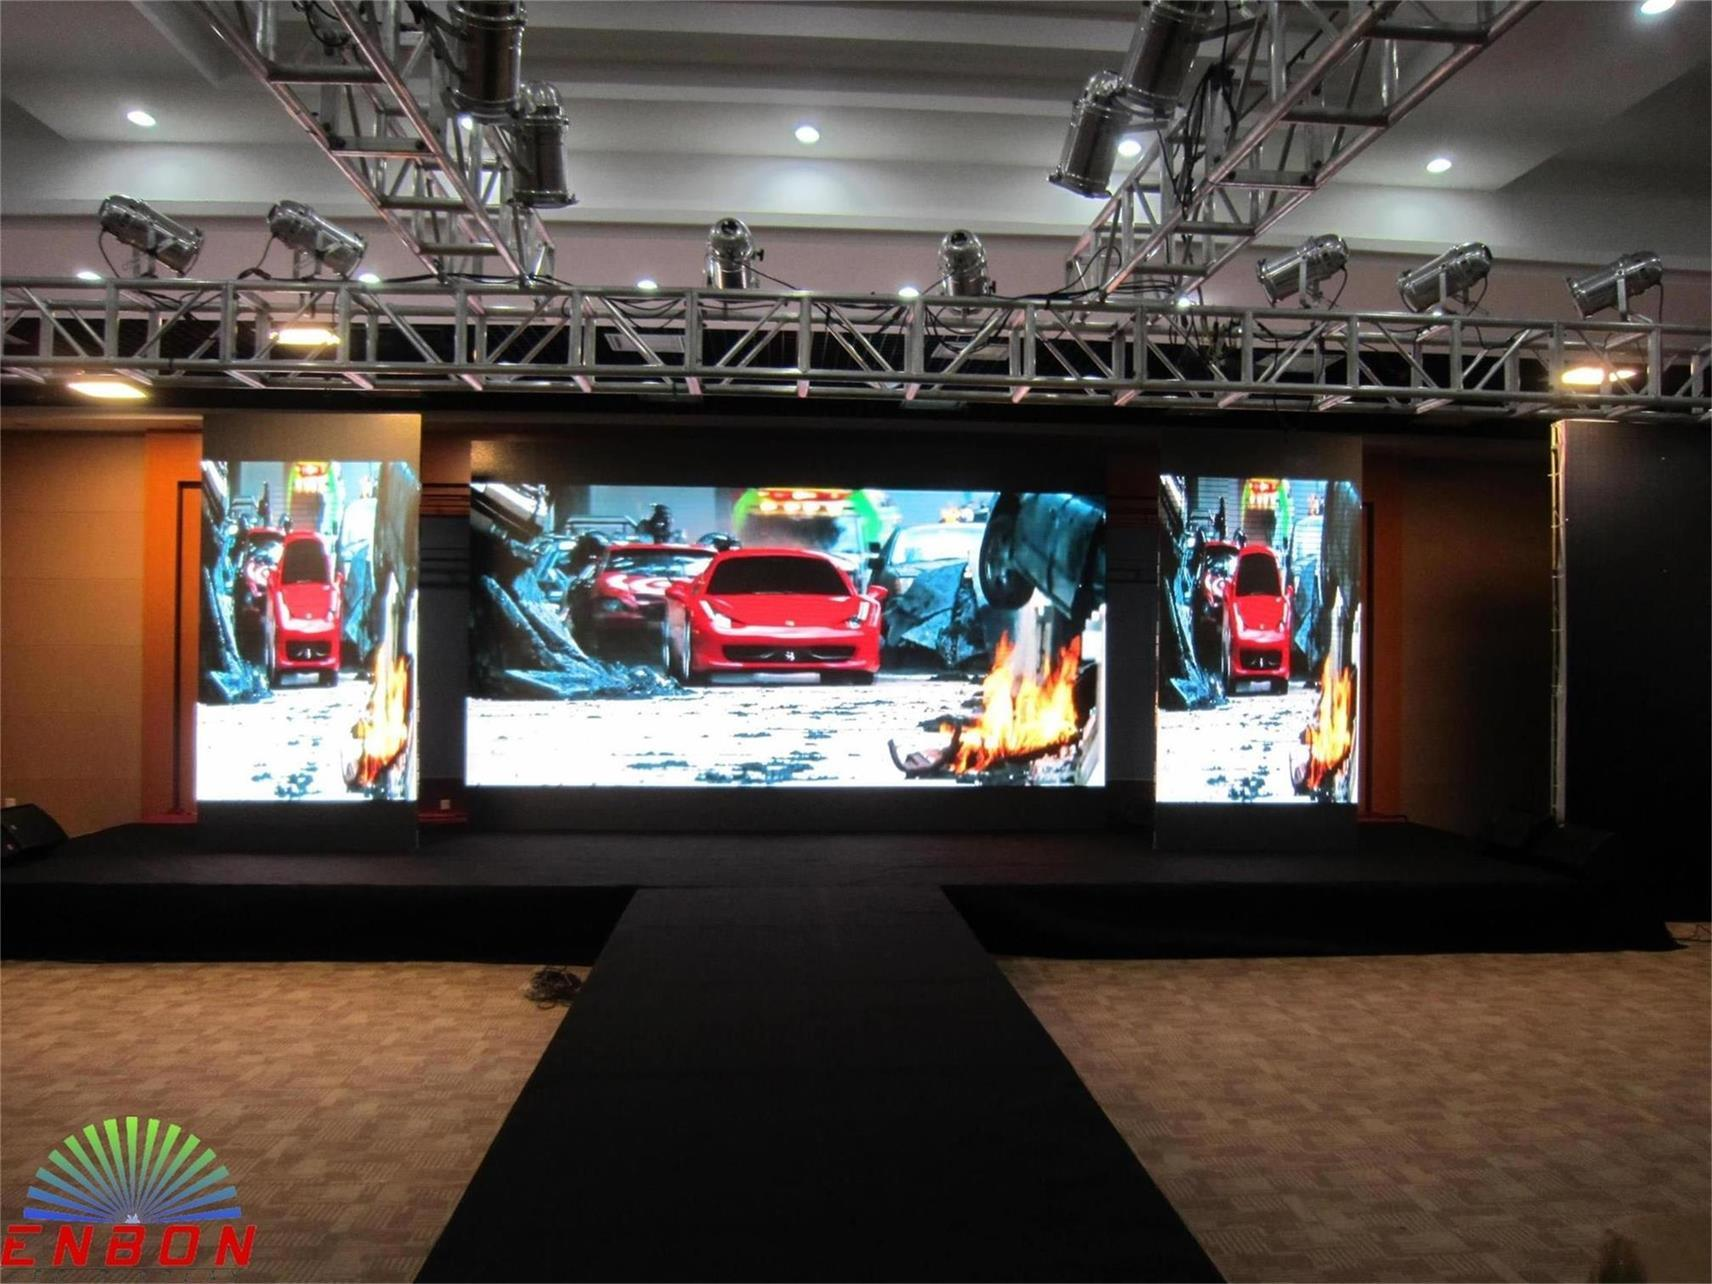 Portble Indoor Full Color Stage Video LED Screen (576*576mm P4.8, P6 LED panel)